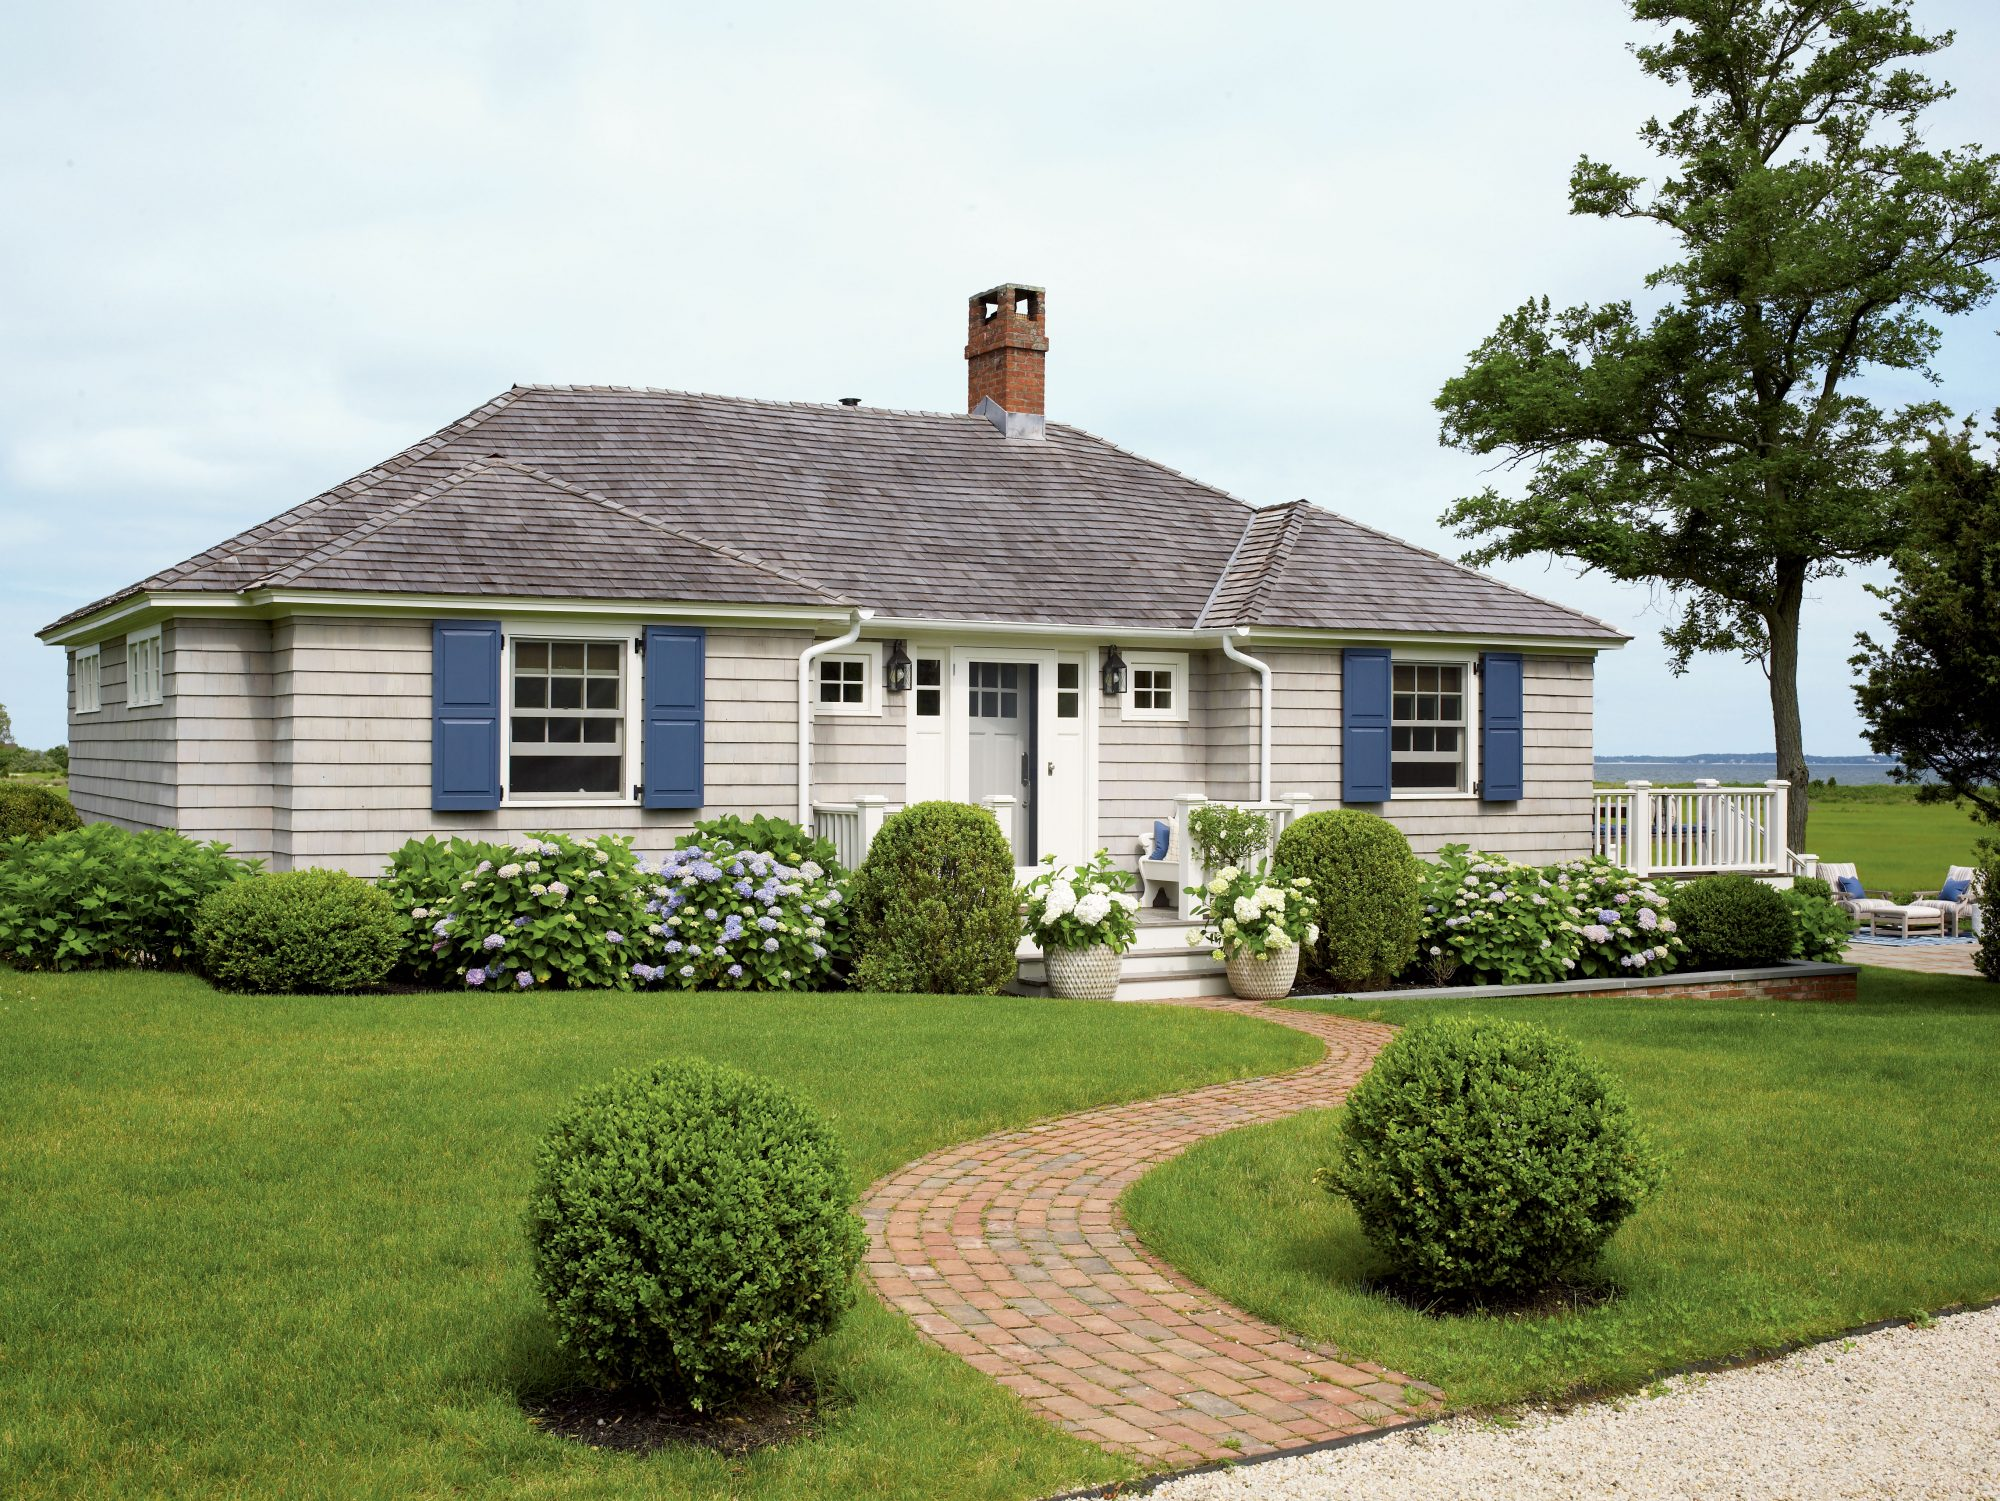 A new gray roof, cozy blue shutters, and pretty shrubs wrapping the house give this cottage contrast—and the welcoming aesthetic it deserves.